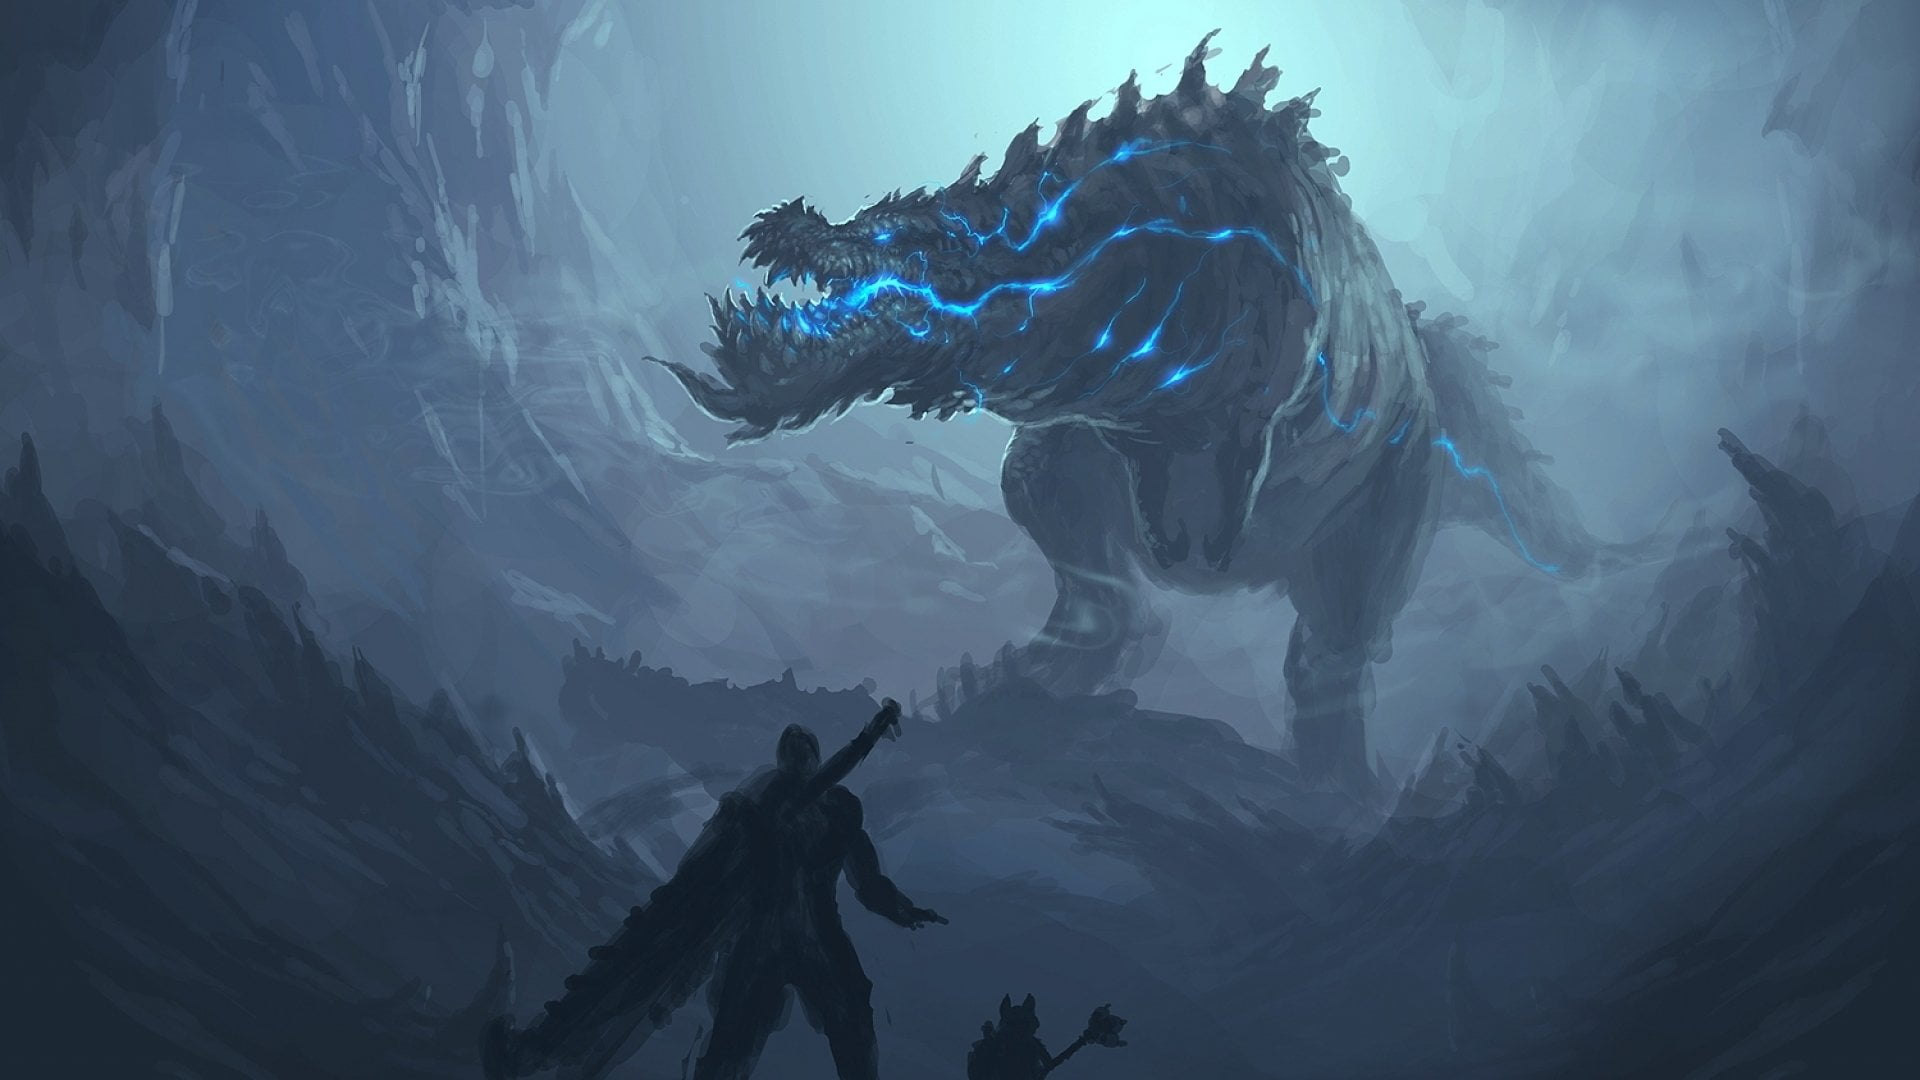 Blue and black dragon wallpaper creature teeth Monster Hunter 1920x1080